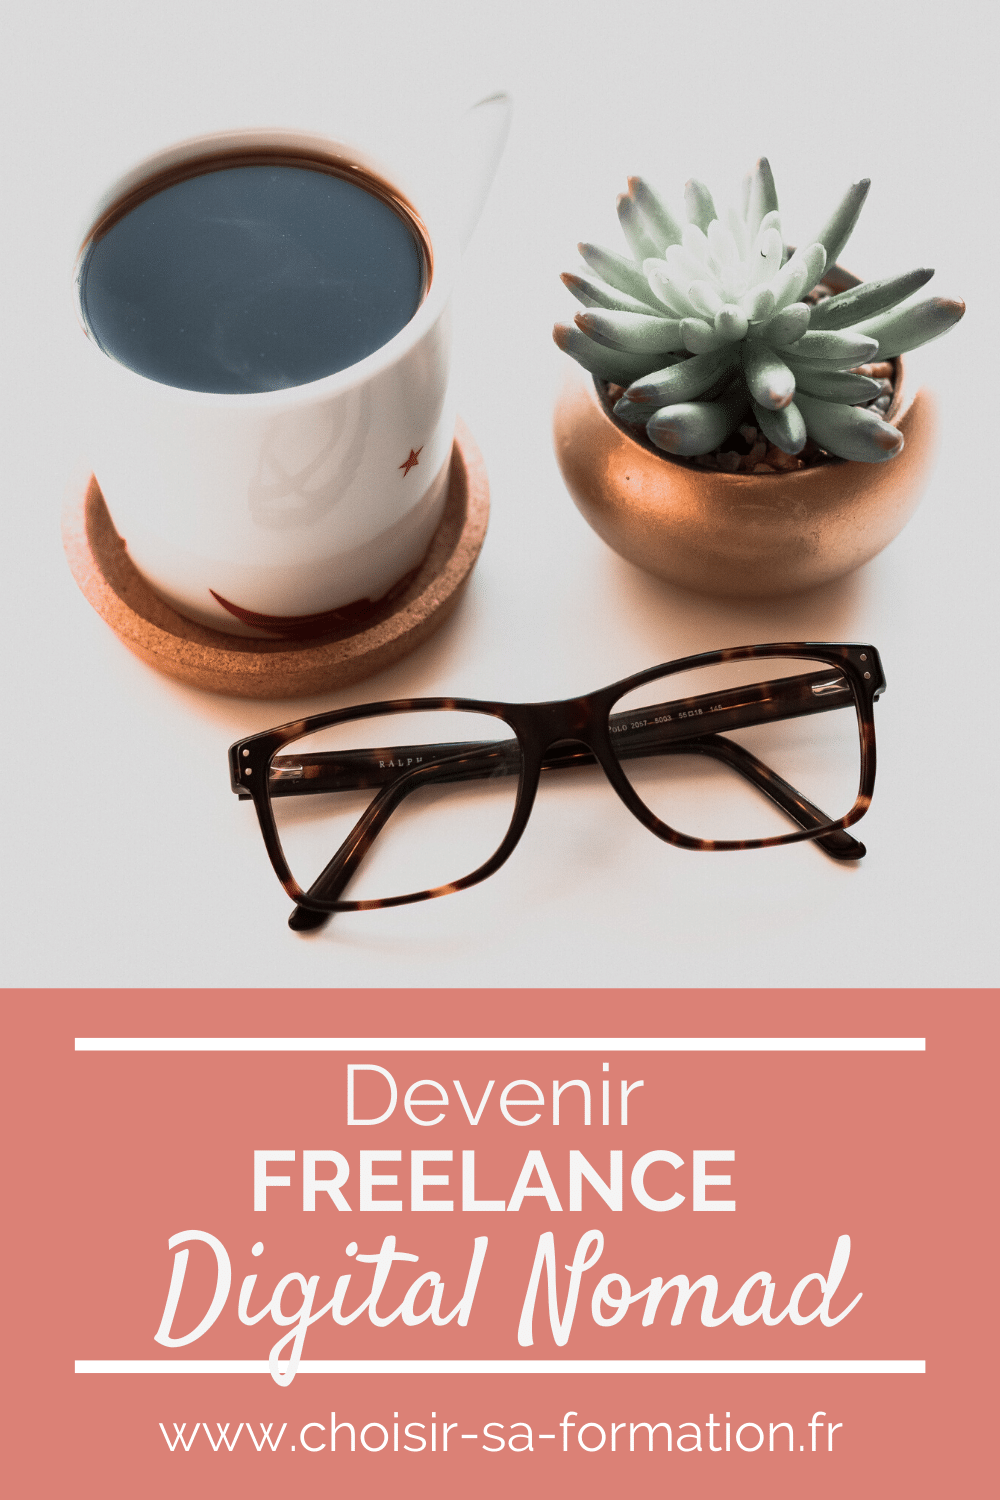 devenir freelance digital nomad